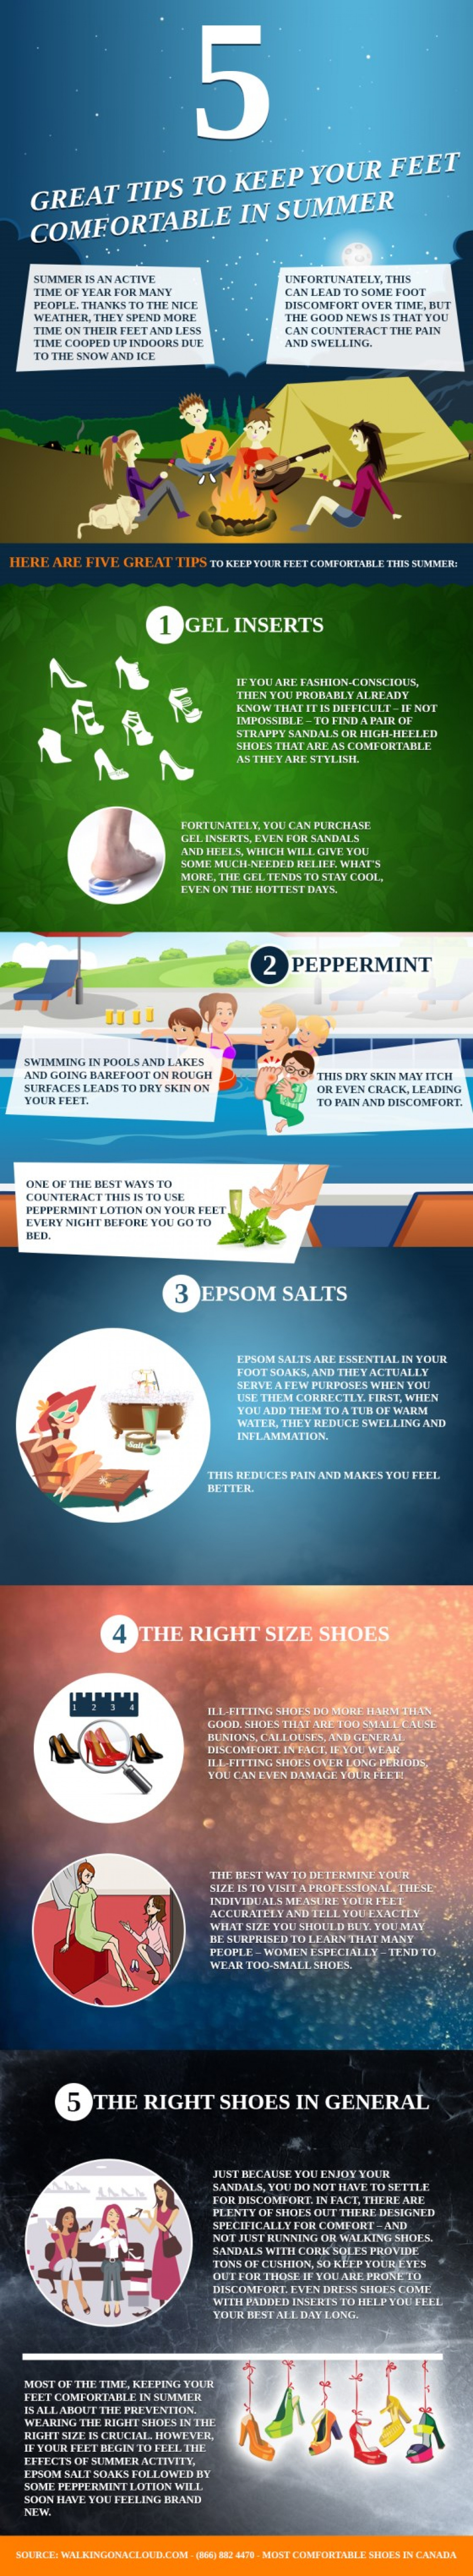 5 Great Tips to Keep Your Feet Comfortable in Summer Infographic